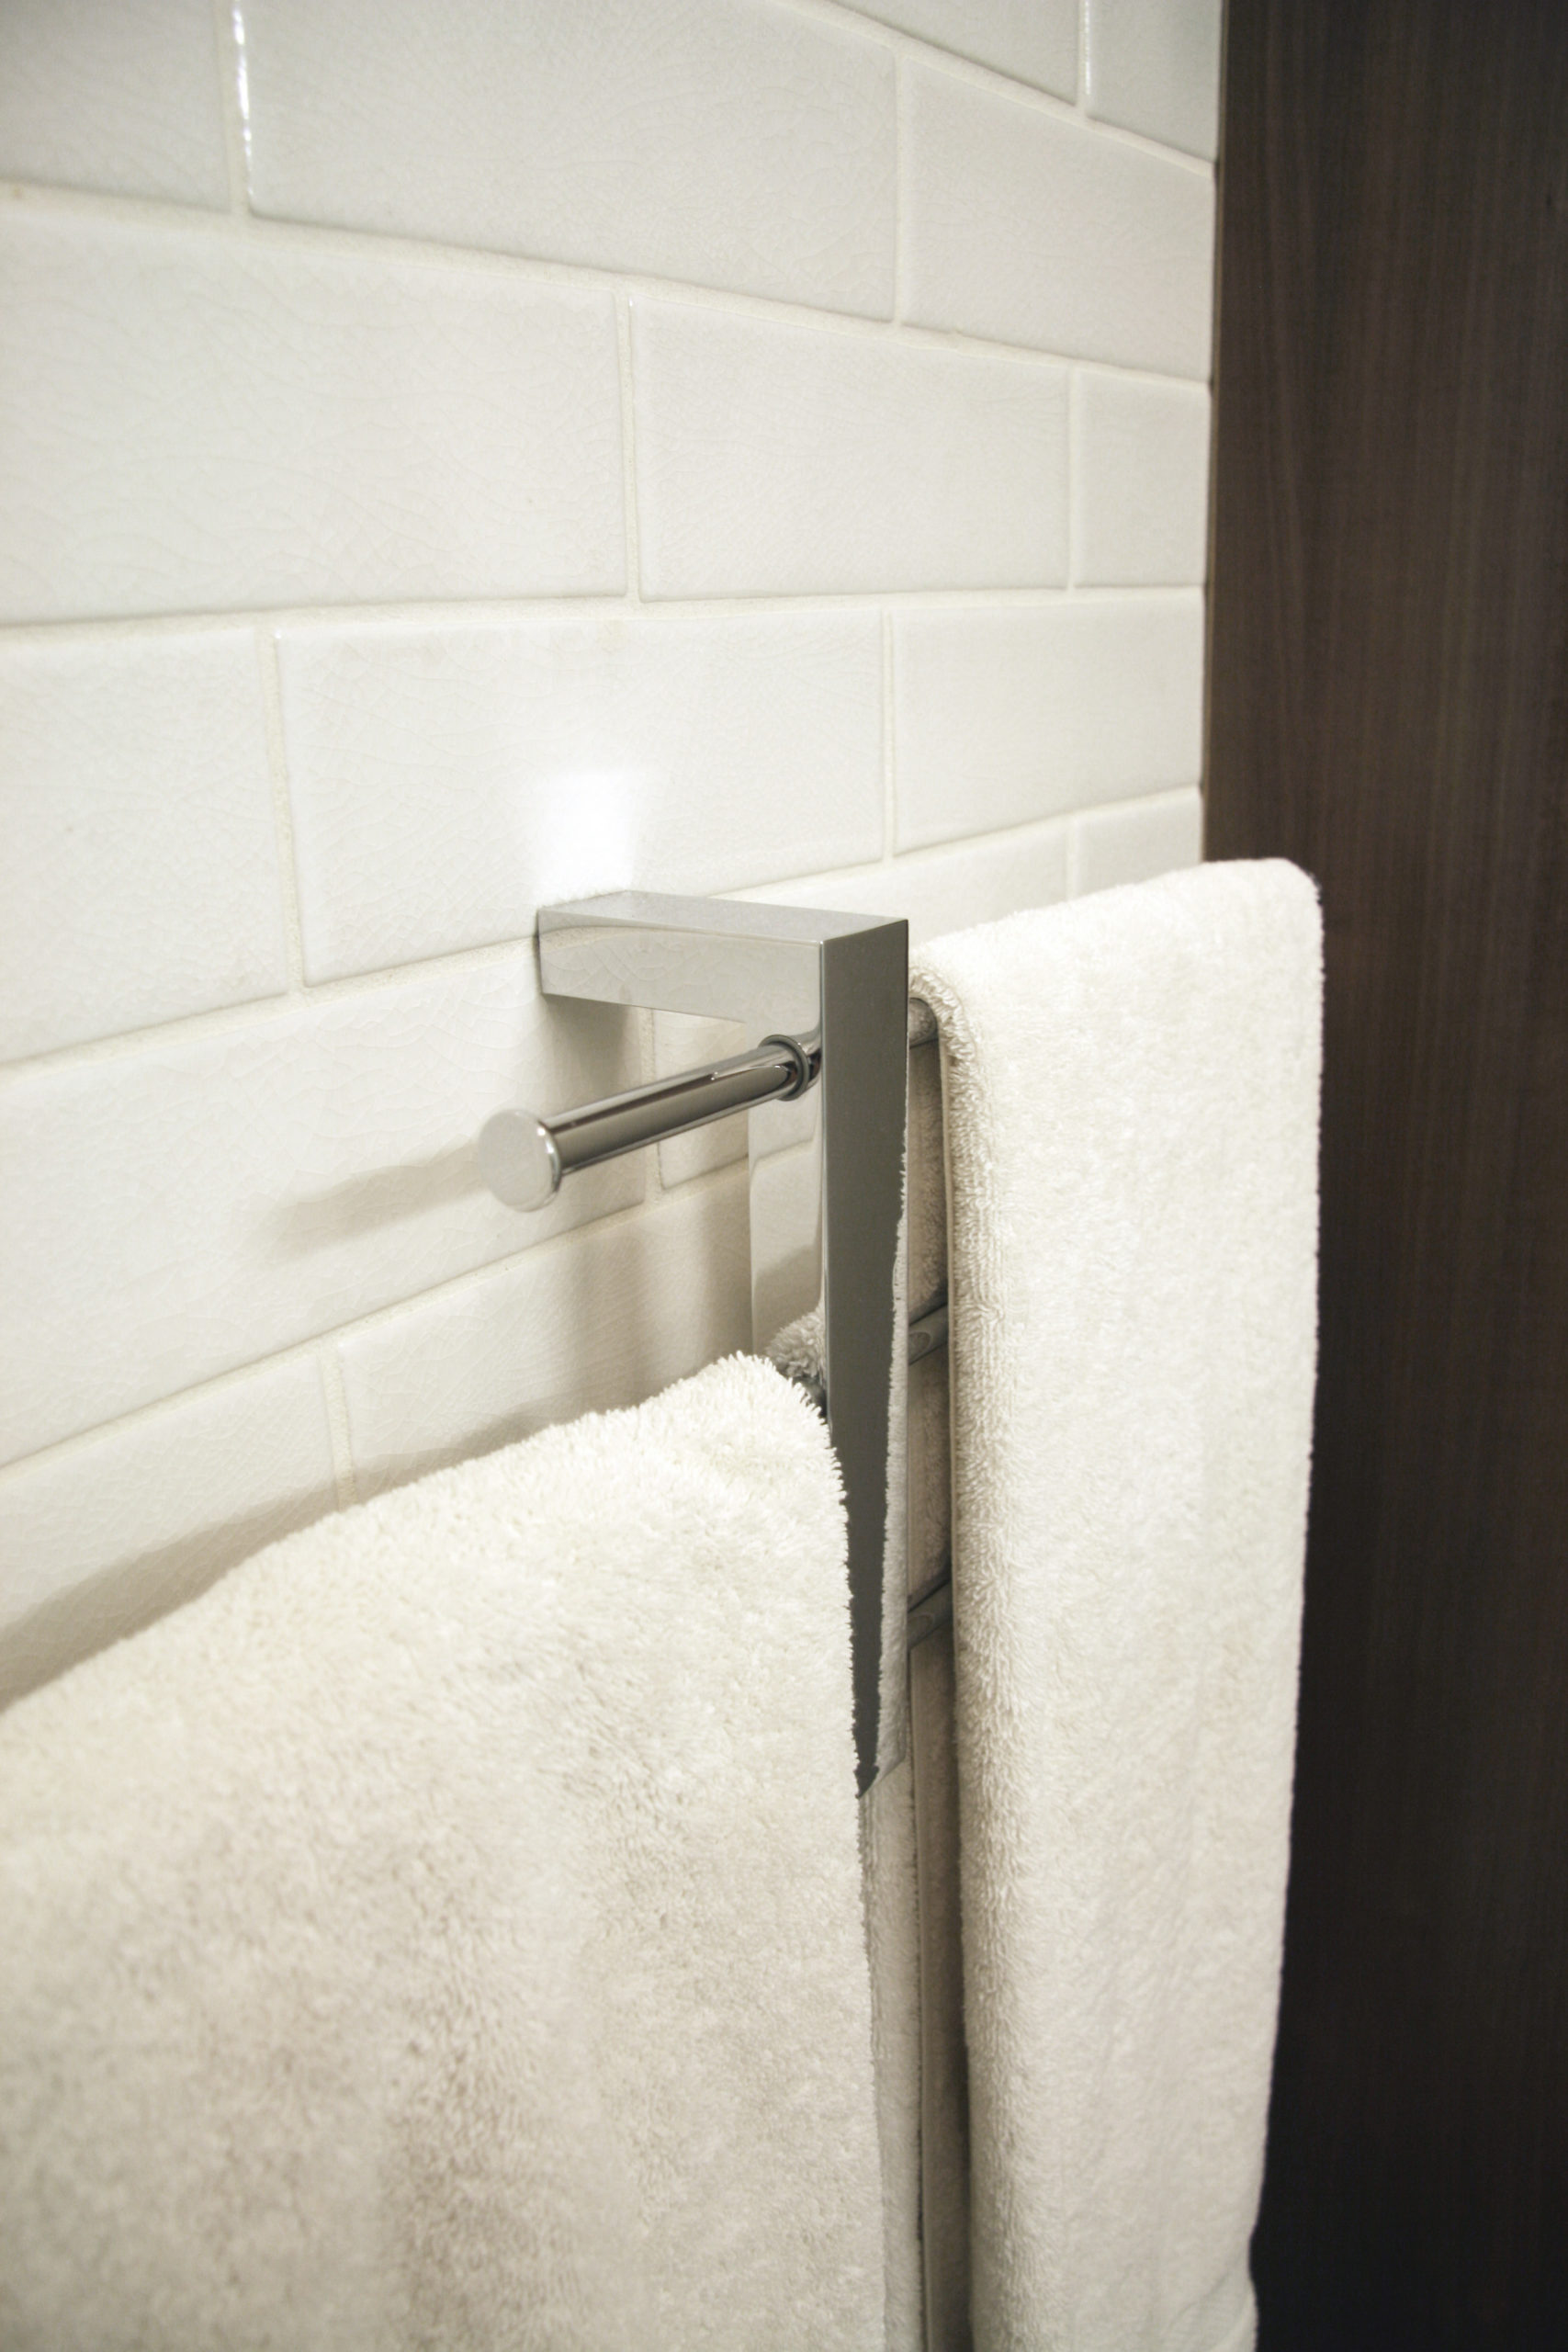 Bathroom towel rail to maximise space in New York City apartment